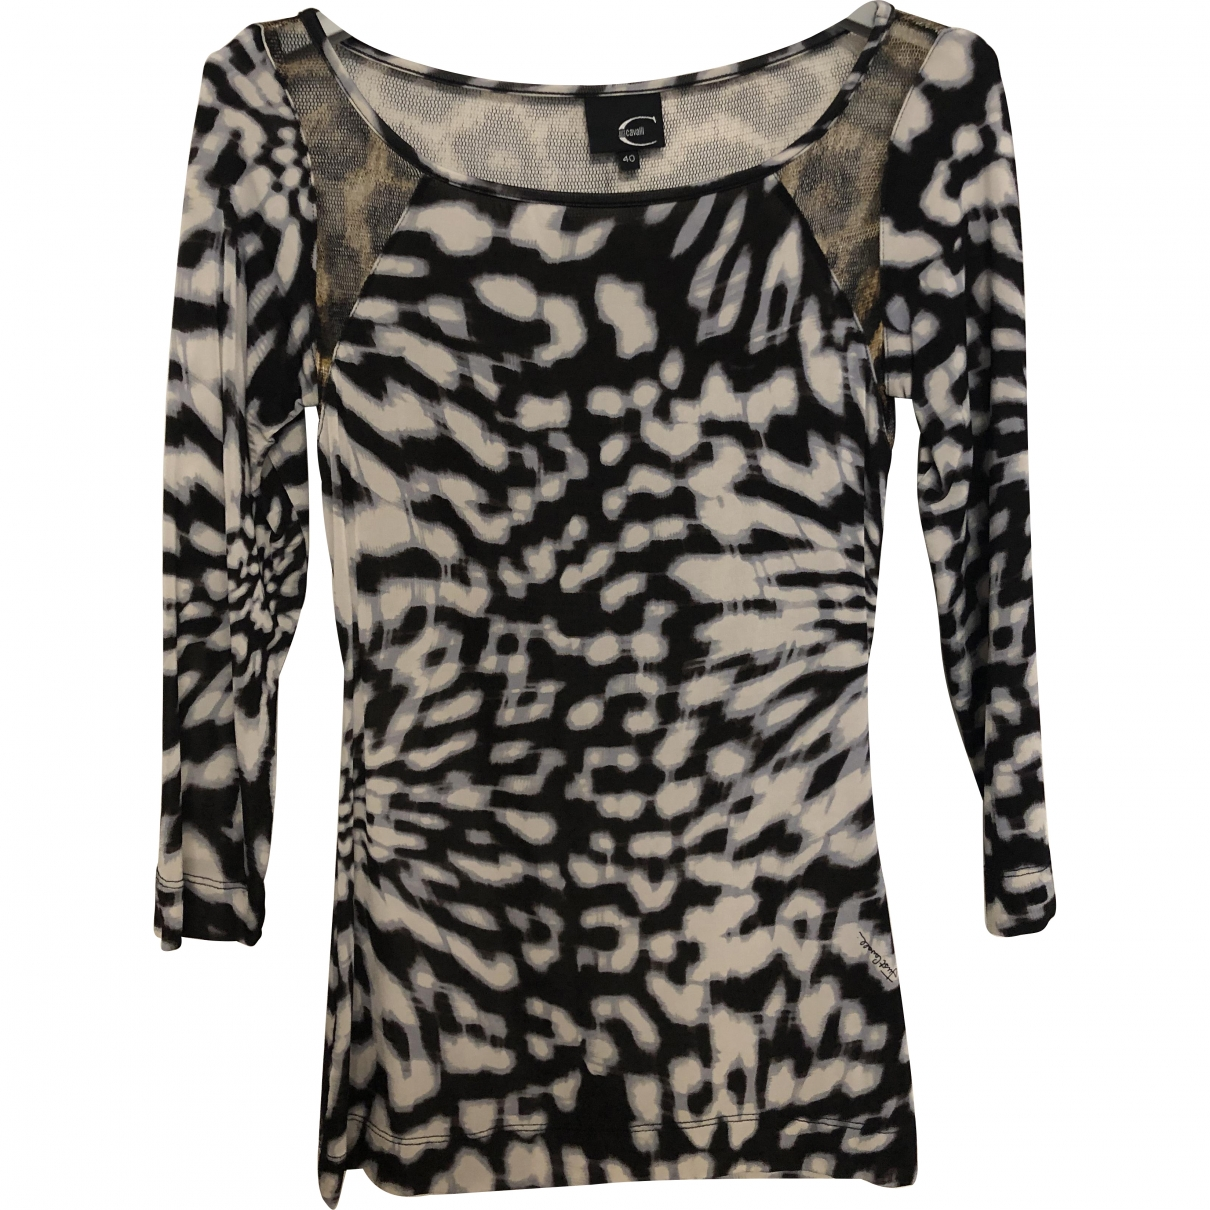 Just Cavalli \N  top for Women 40 IT